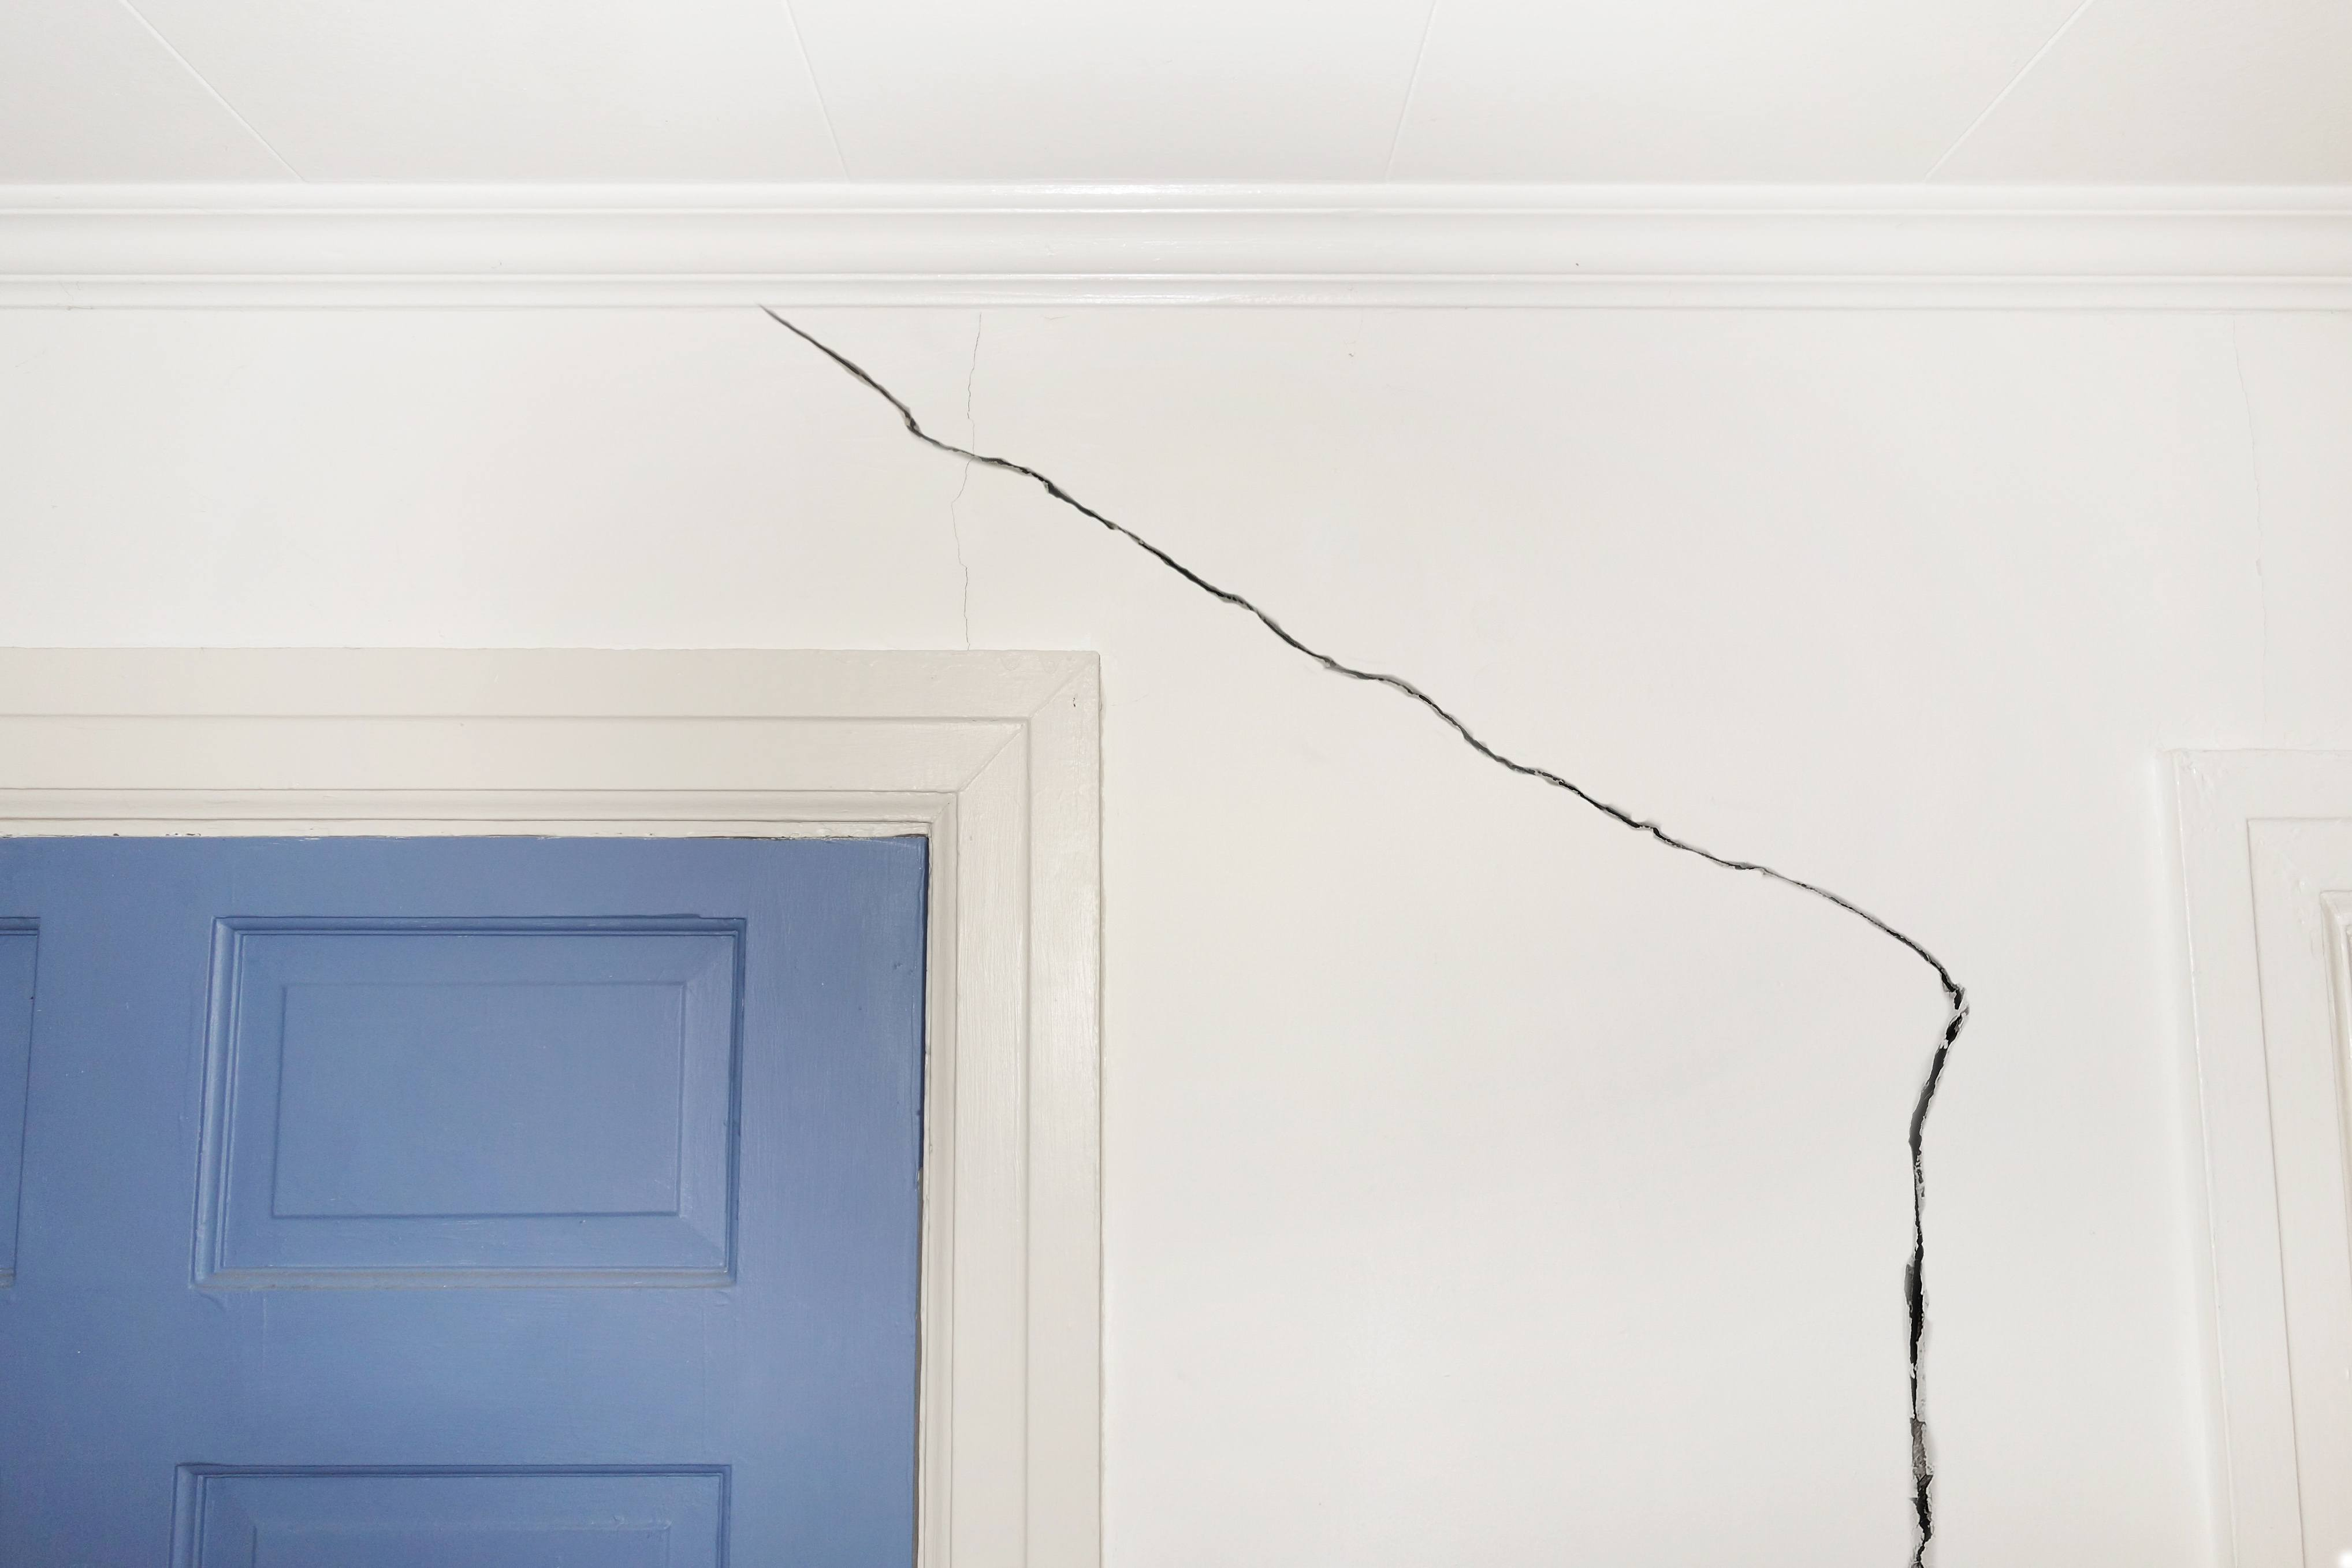 foundation issues what home inspectors look for